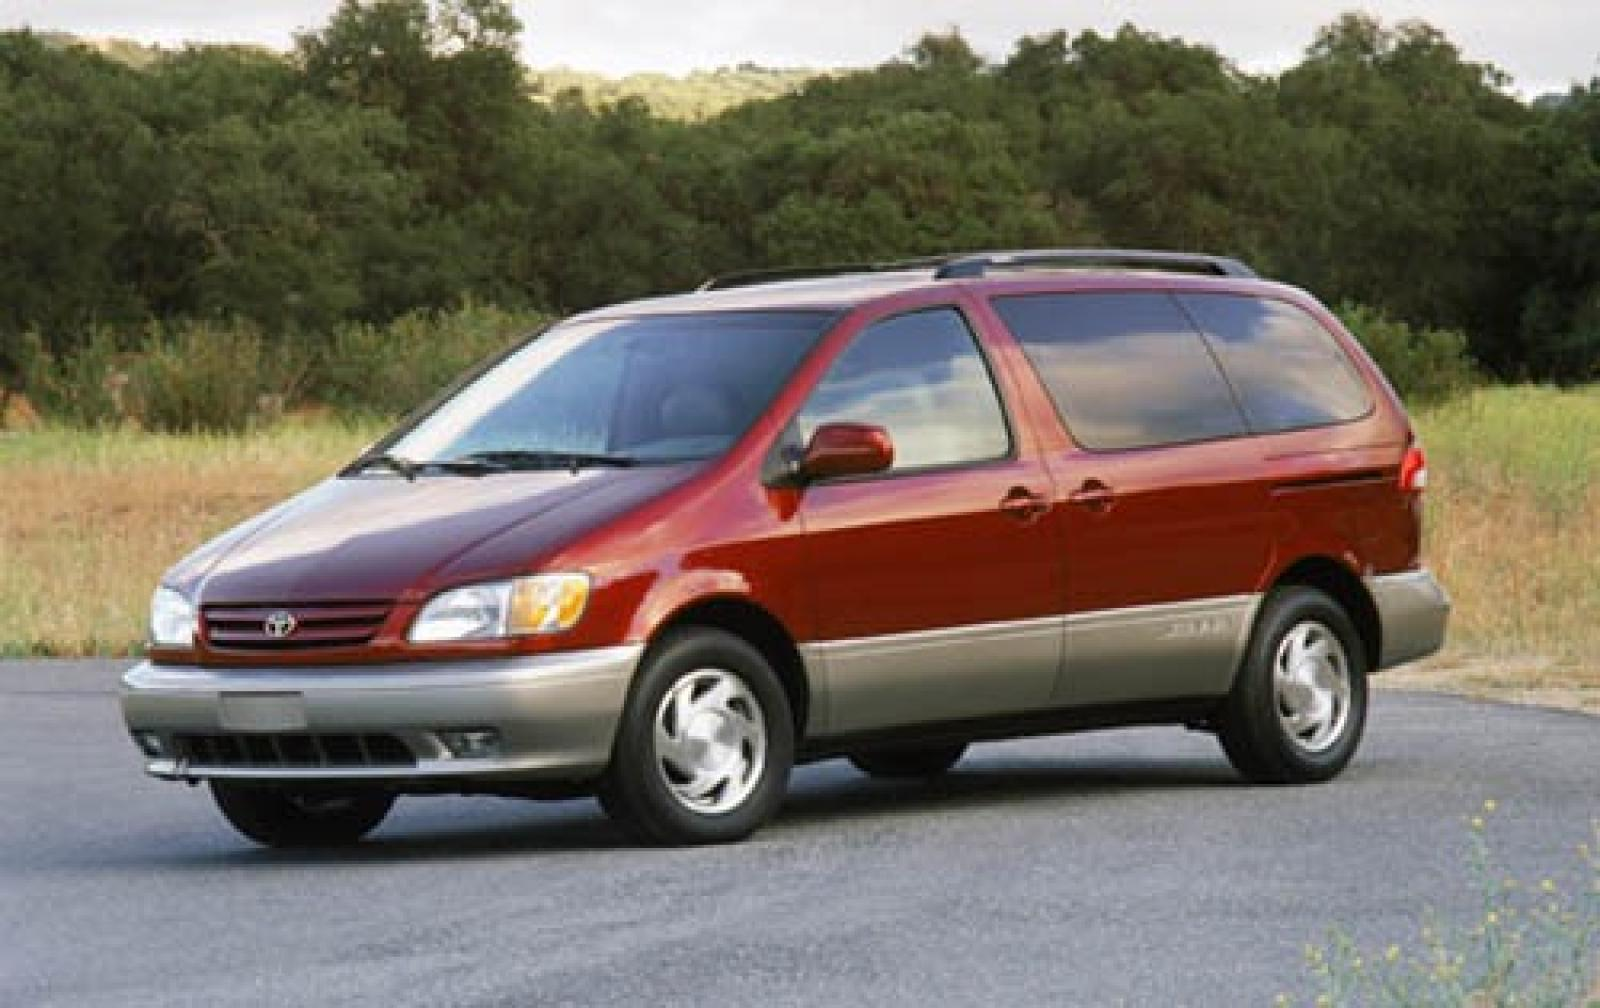 2003 toyota sienna information and photos zombiedrive. Black Bedroom Furniture Sets. Home Design Ideas